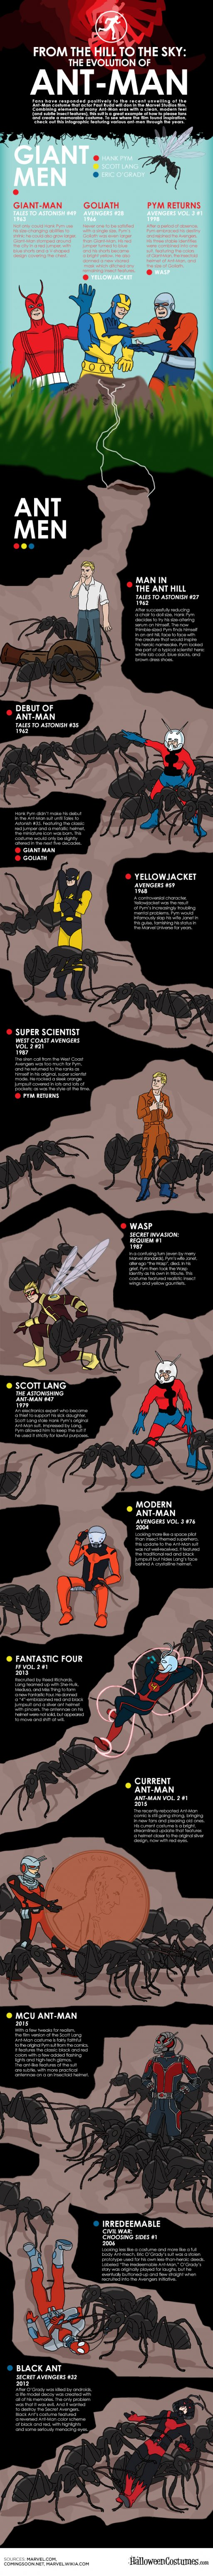 EVOLUTION OF THE ANT-MAN